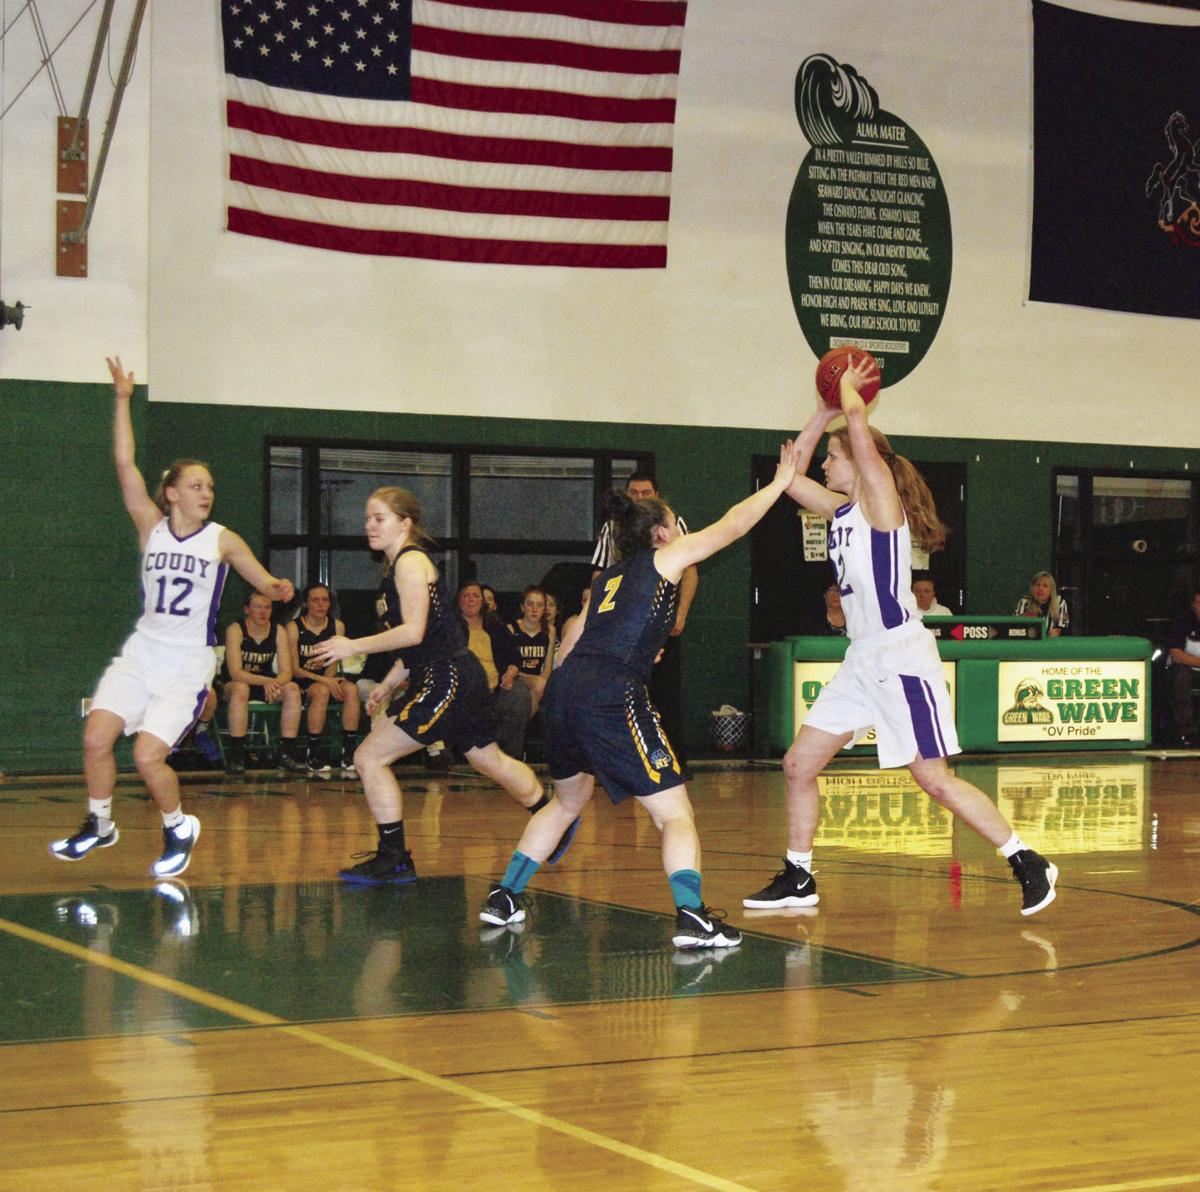 Coudy girls win over NoPo, fall to N  Clarion   Potter